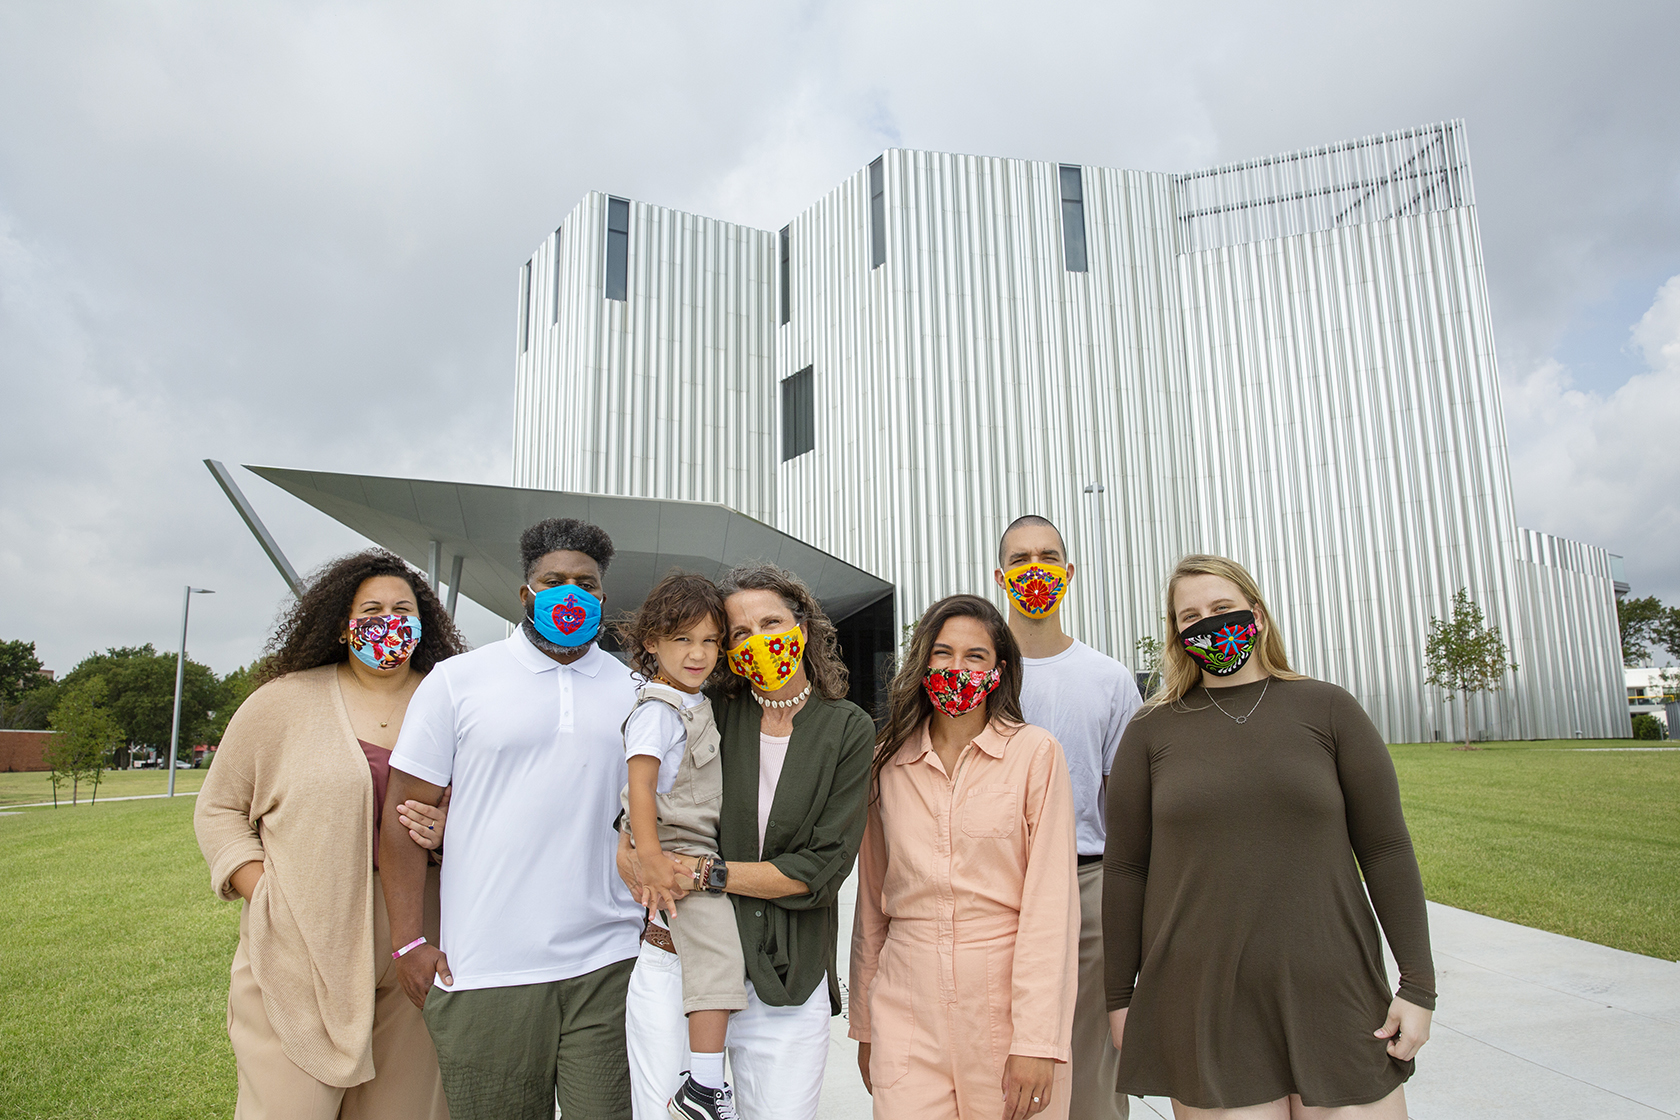 A masked family poses in front of a contemporary arts center